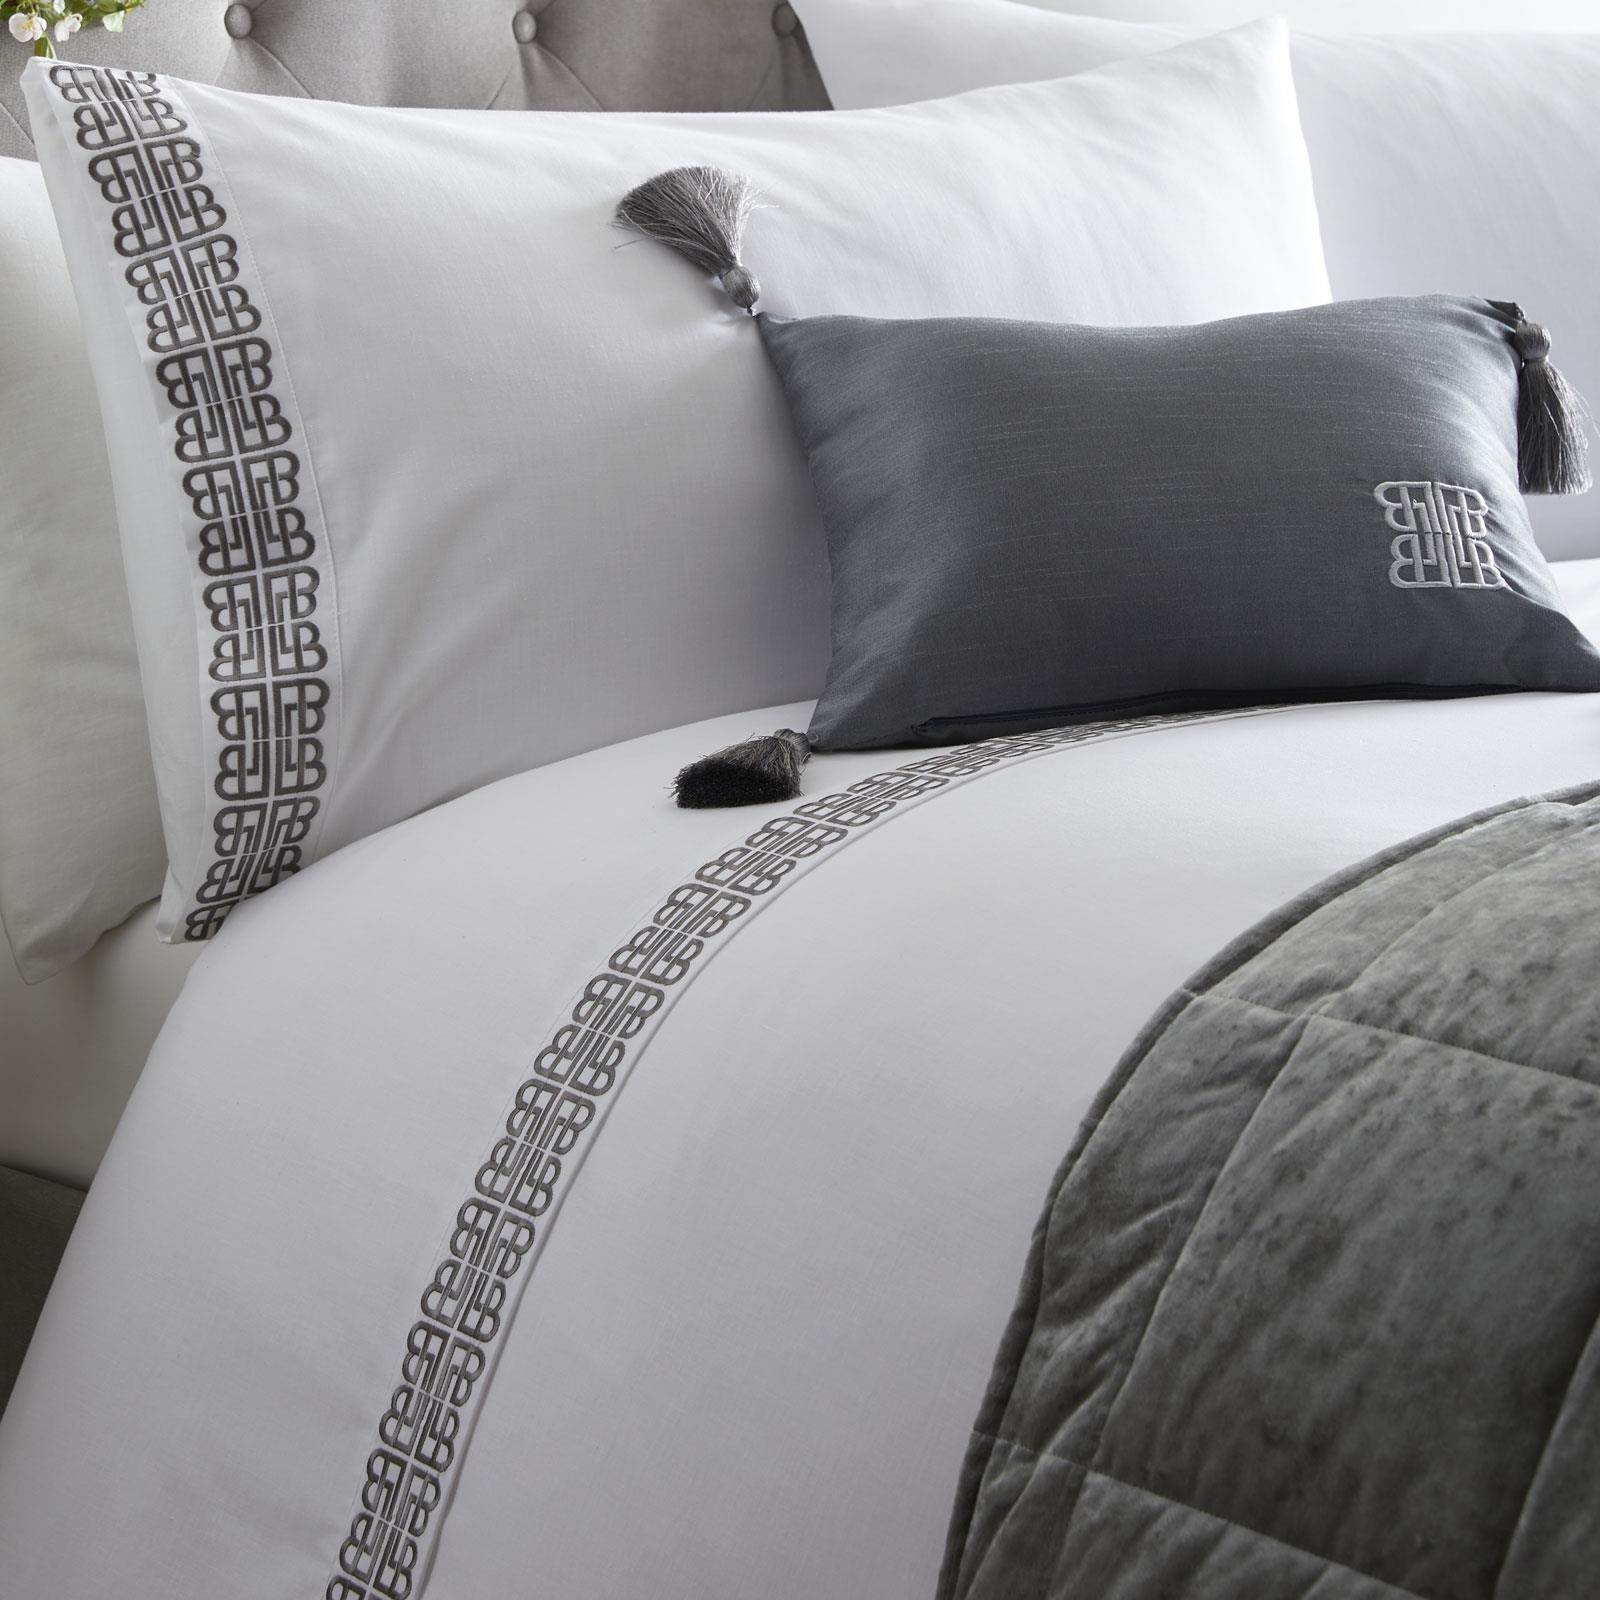 White Duvet Covers Grey Embroidered Laurence Llewellyn Bowen Luxury Bedding Sets Ebay